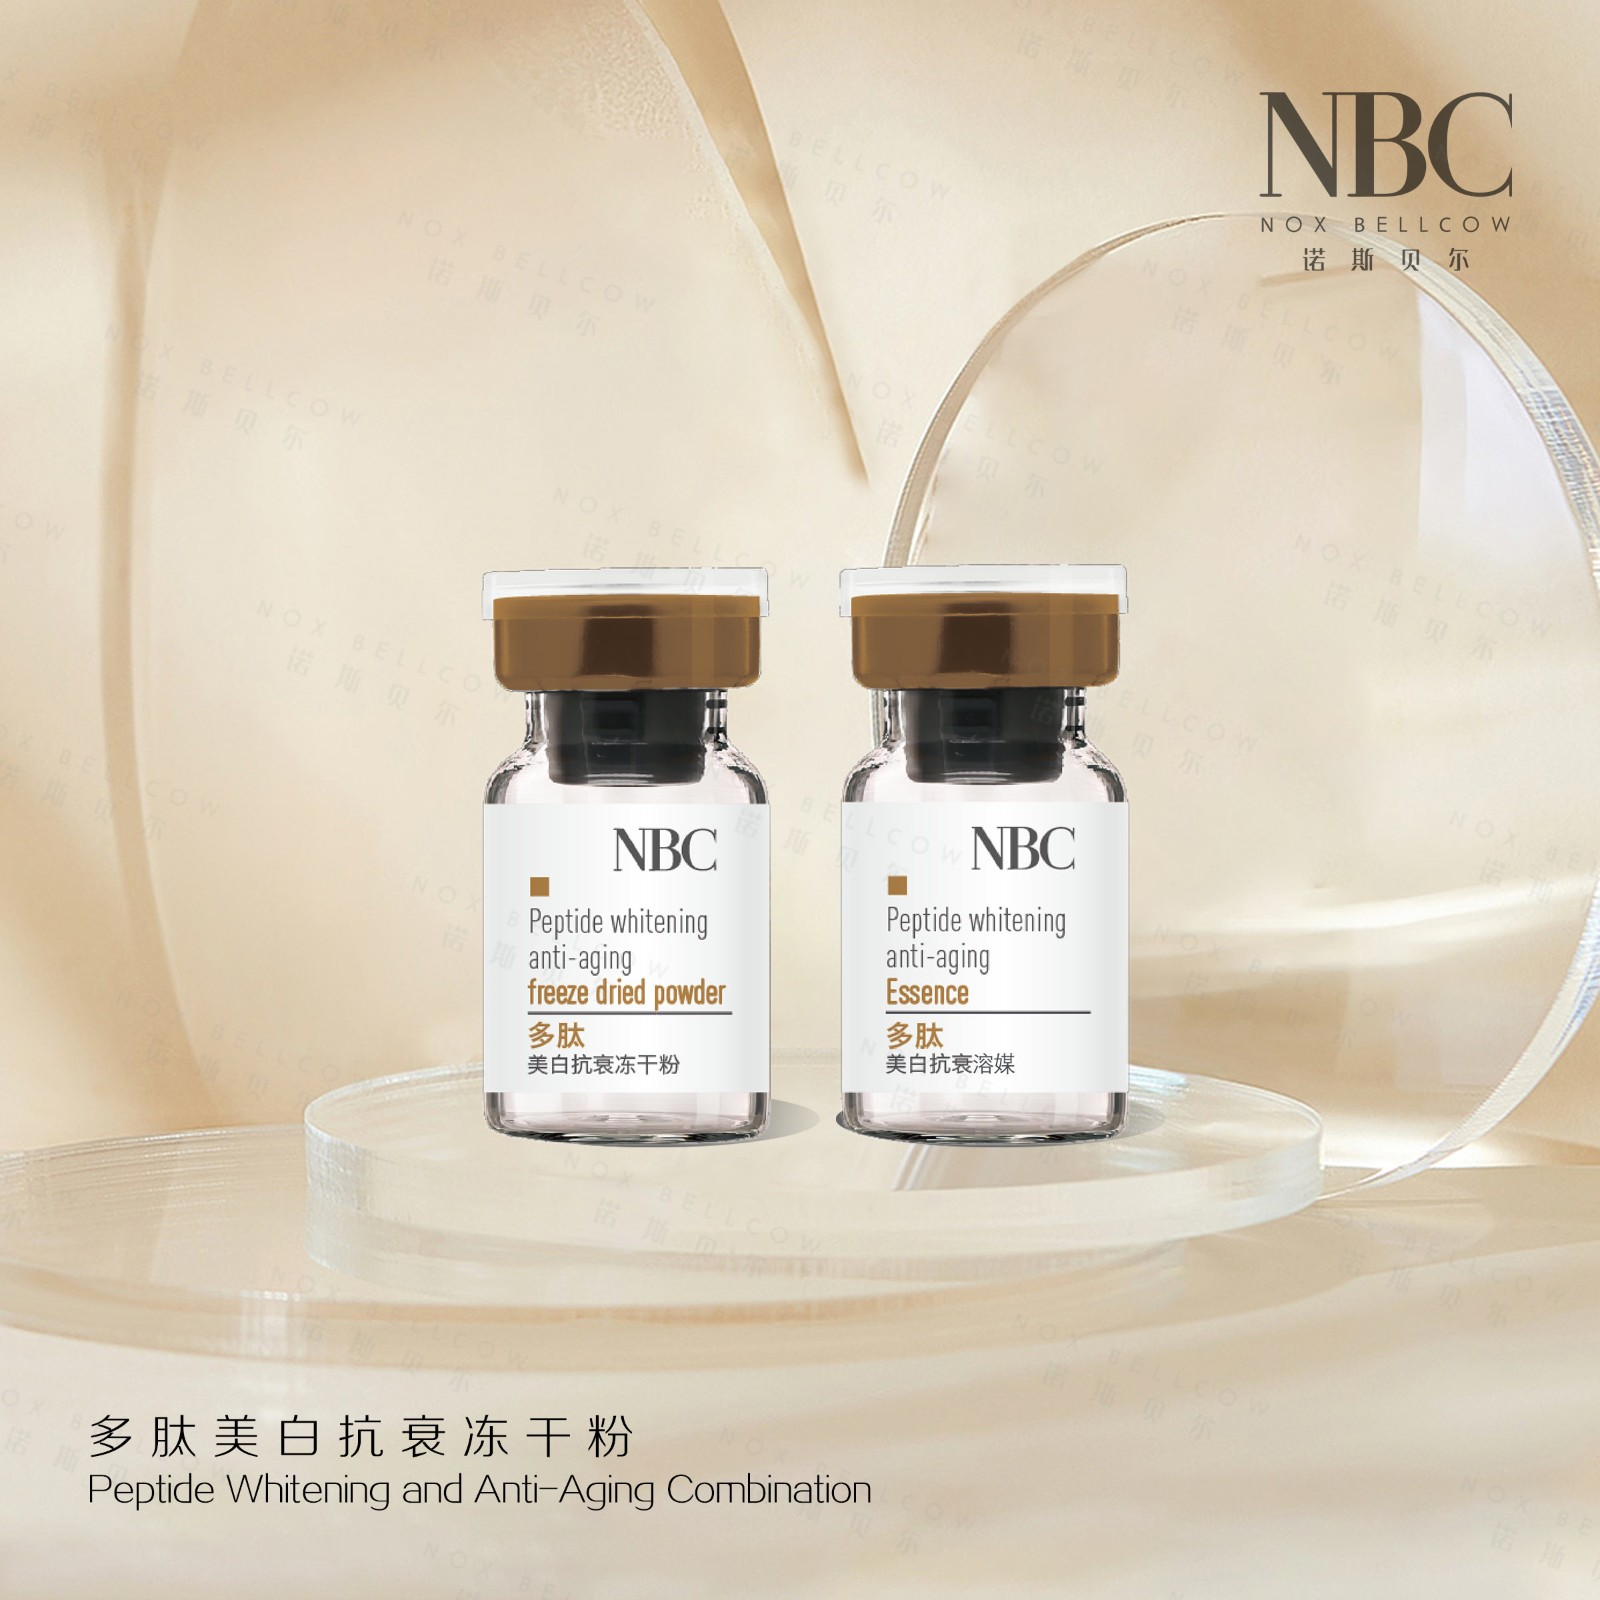 product-Hyaluronlc Acid Whitening Hydrating Essence-NOX BELLCOW-img